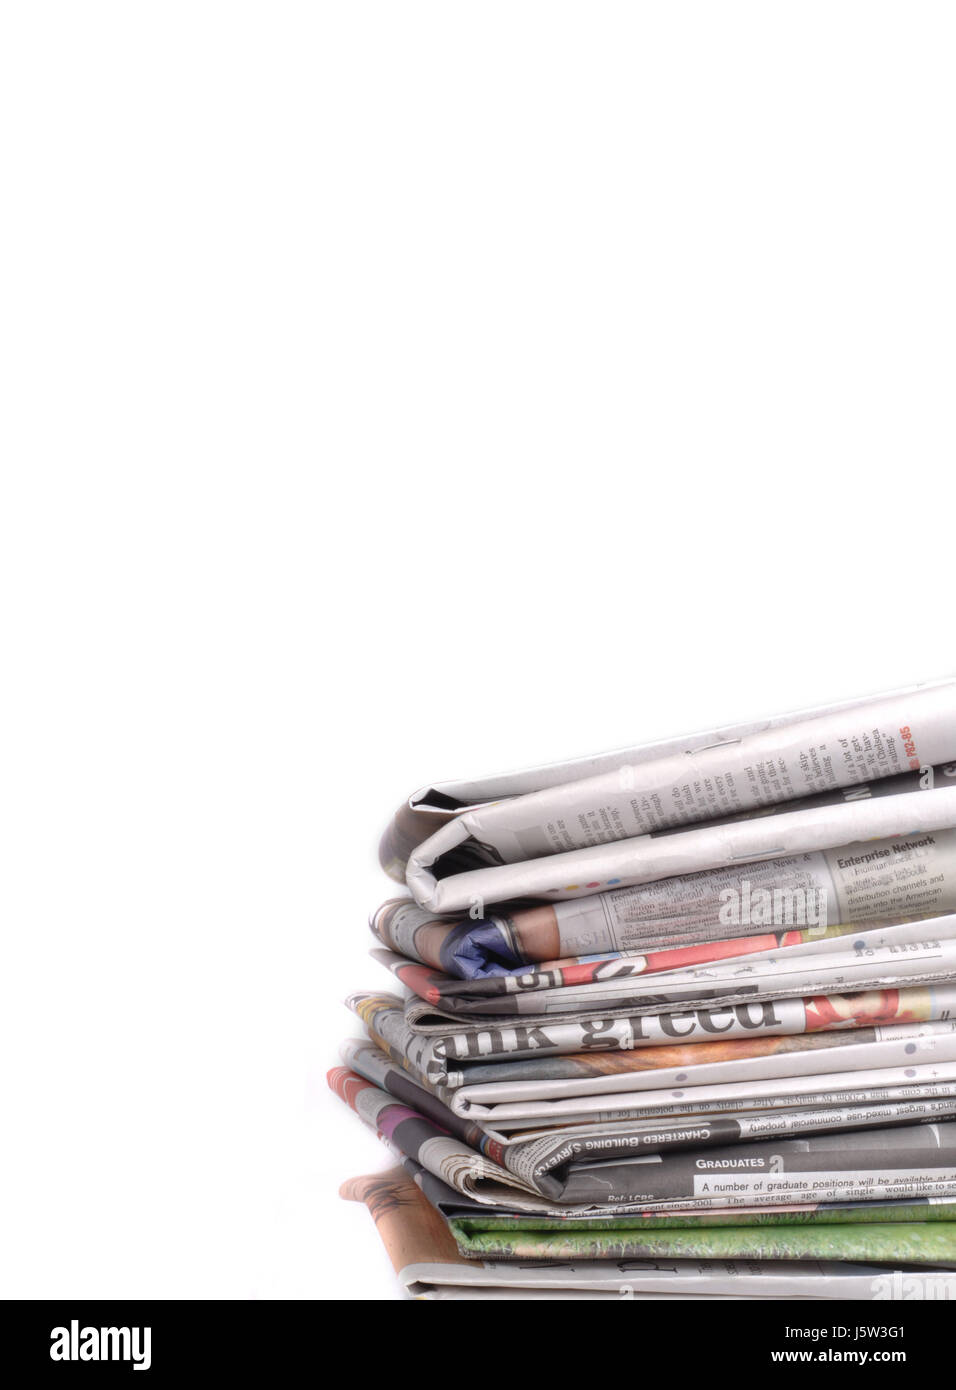 newspapers print publication newspaper journal objects isolated studio stack - Stock Image